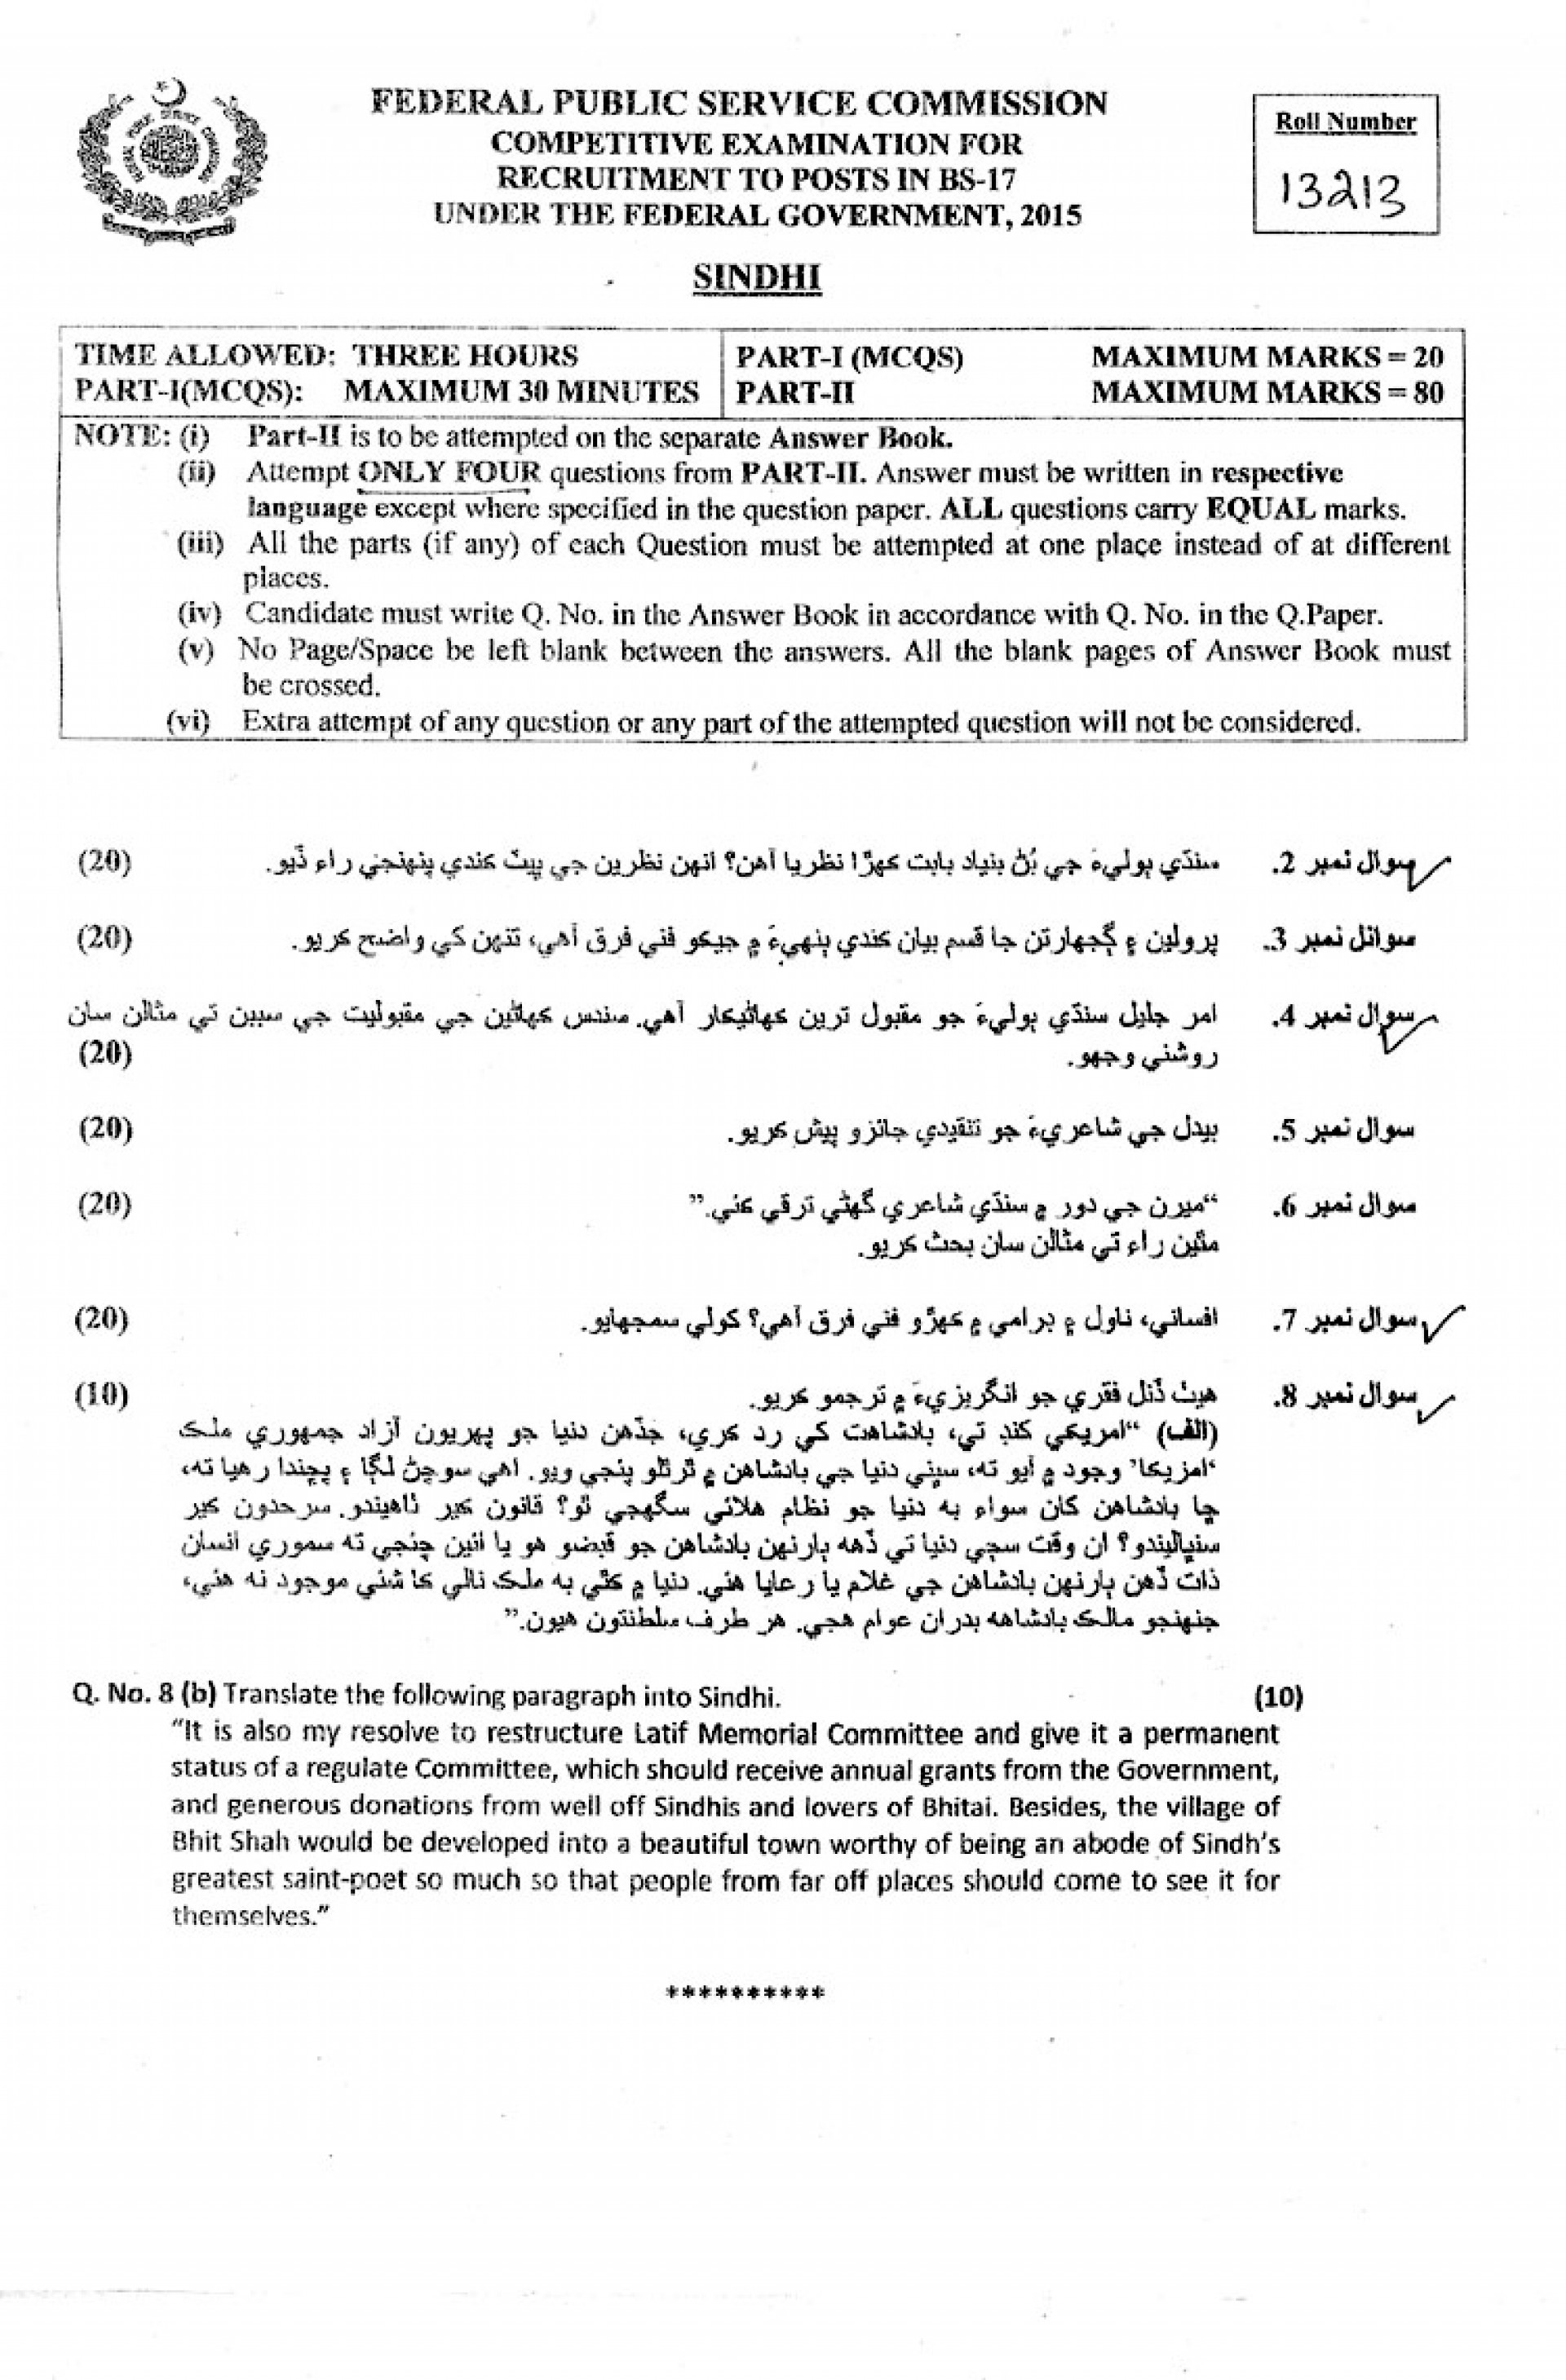 006 Sindhi Essay Impressive Essays For Competitive Exams Book Class 12 1920